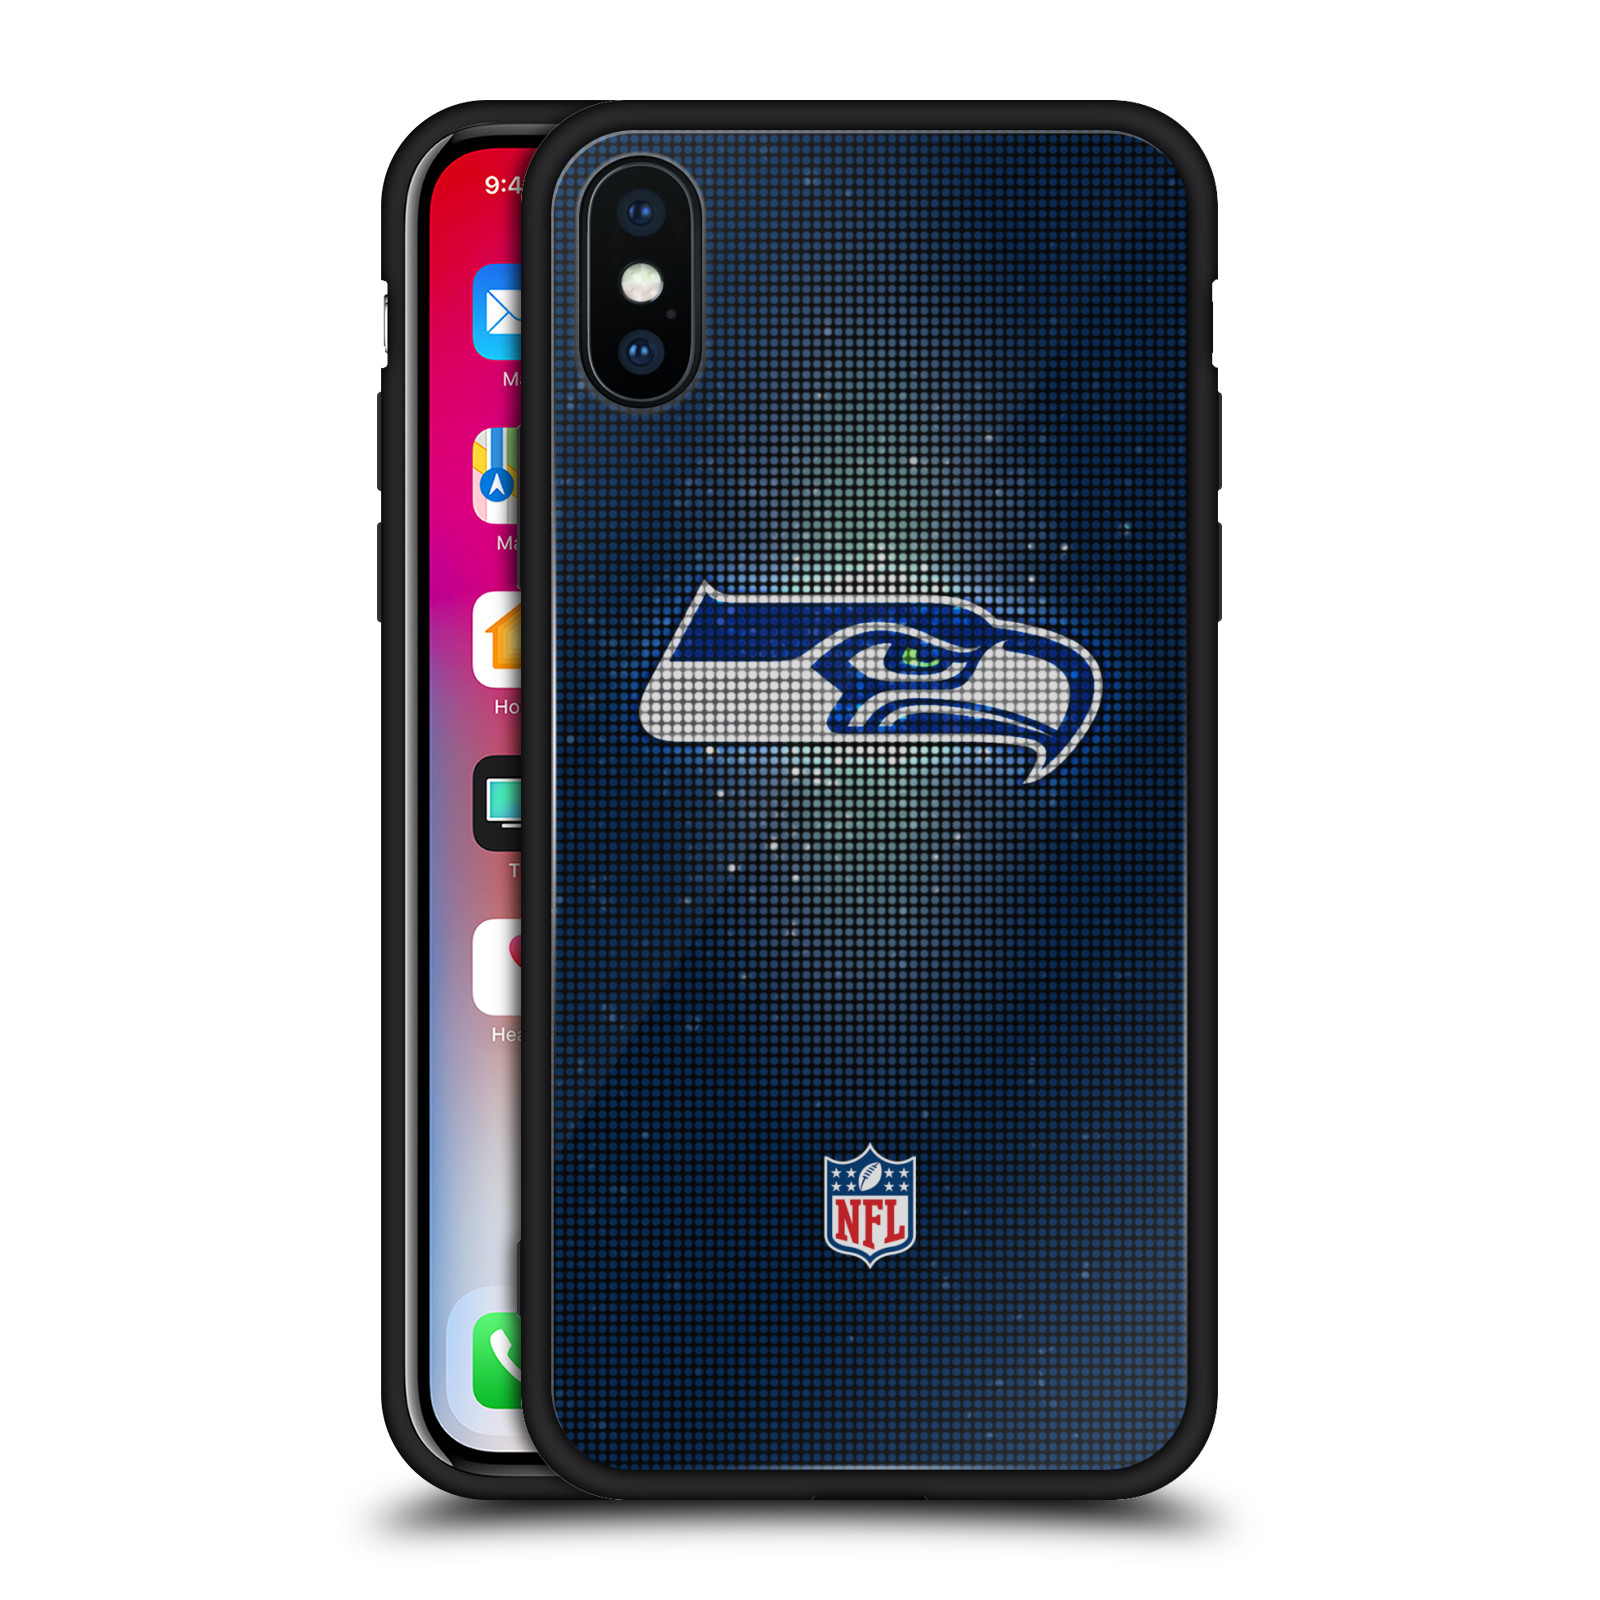 OFFICIAL-NFL-2017-18-SEATTLE-SEAHAWKS-BLACK-HYBRID-GLASS-CASE-FOR-iPHONE-PHONES